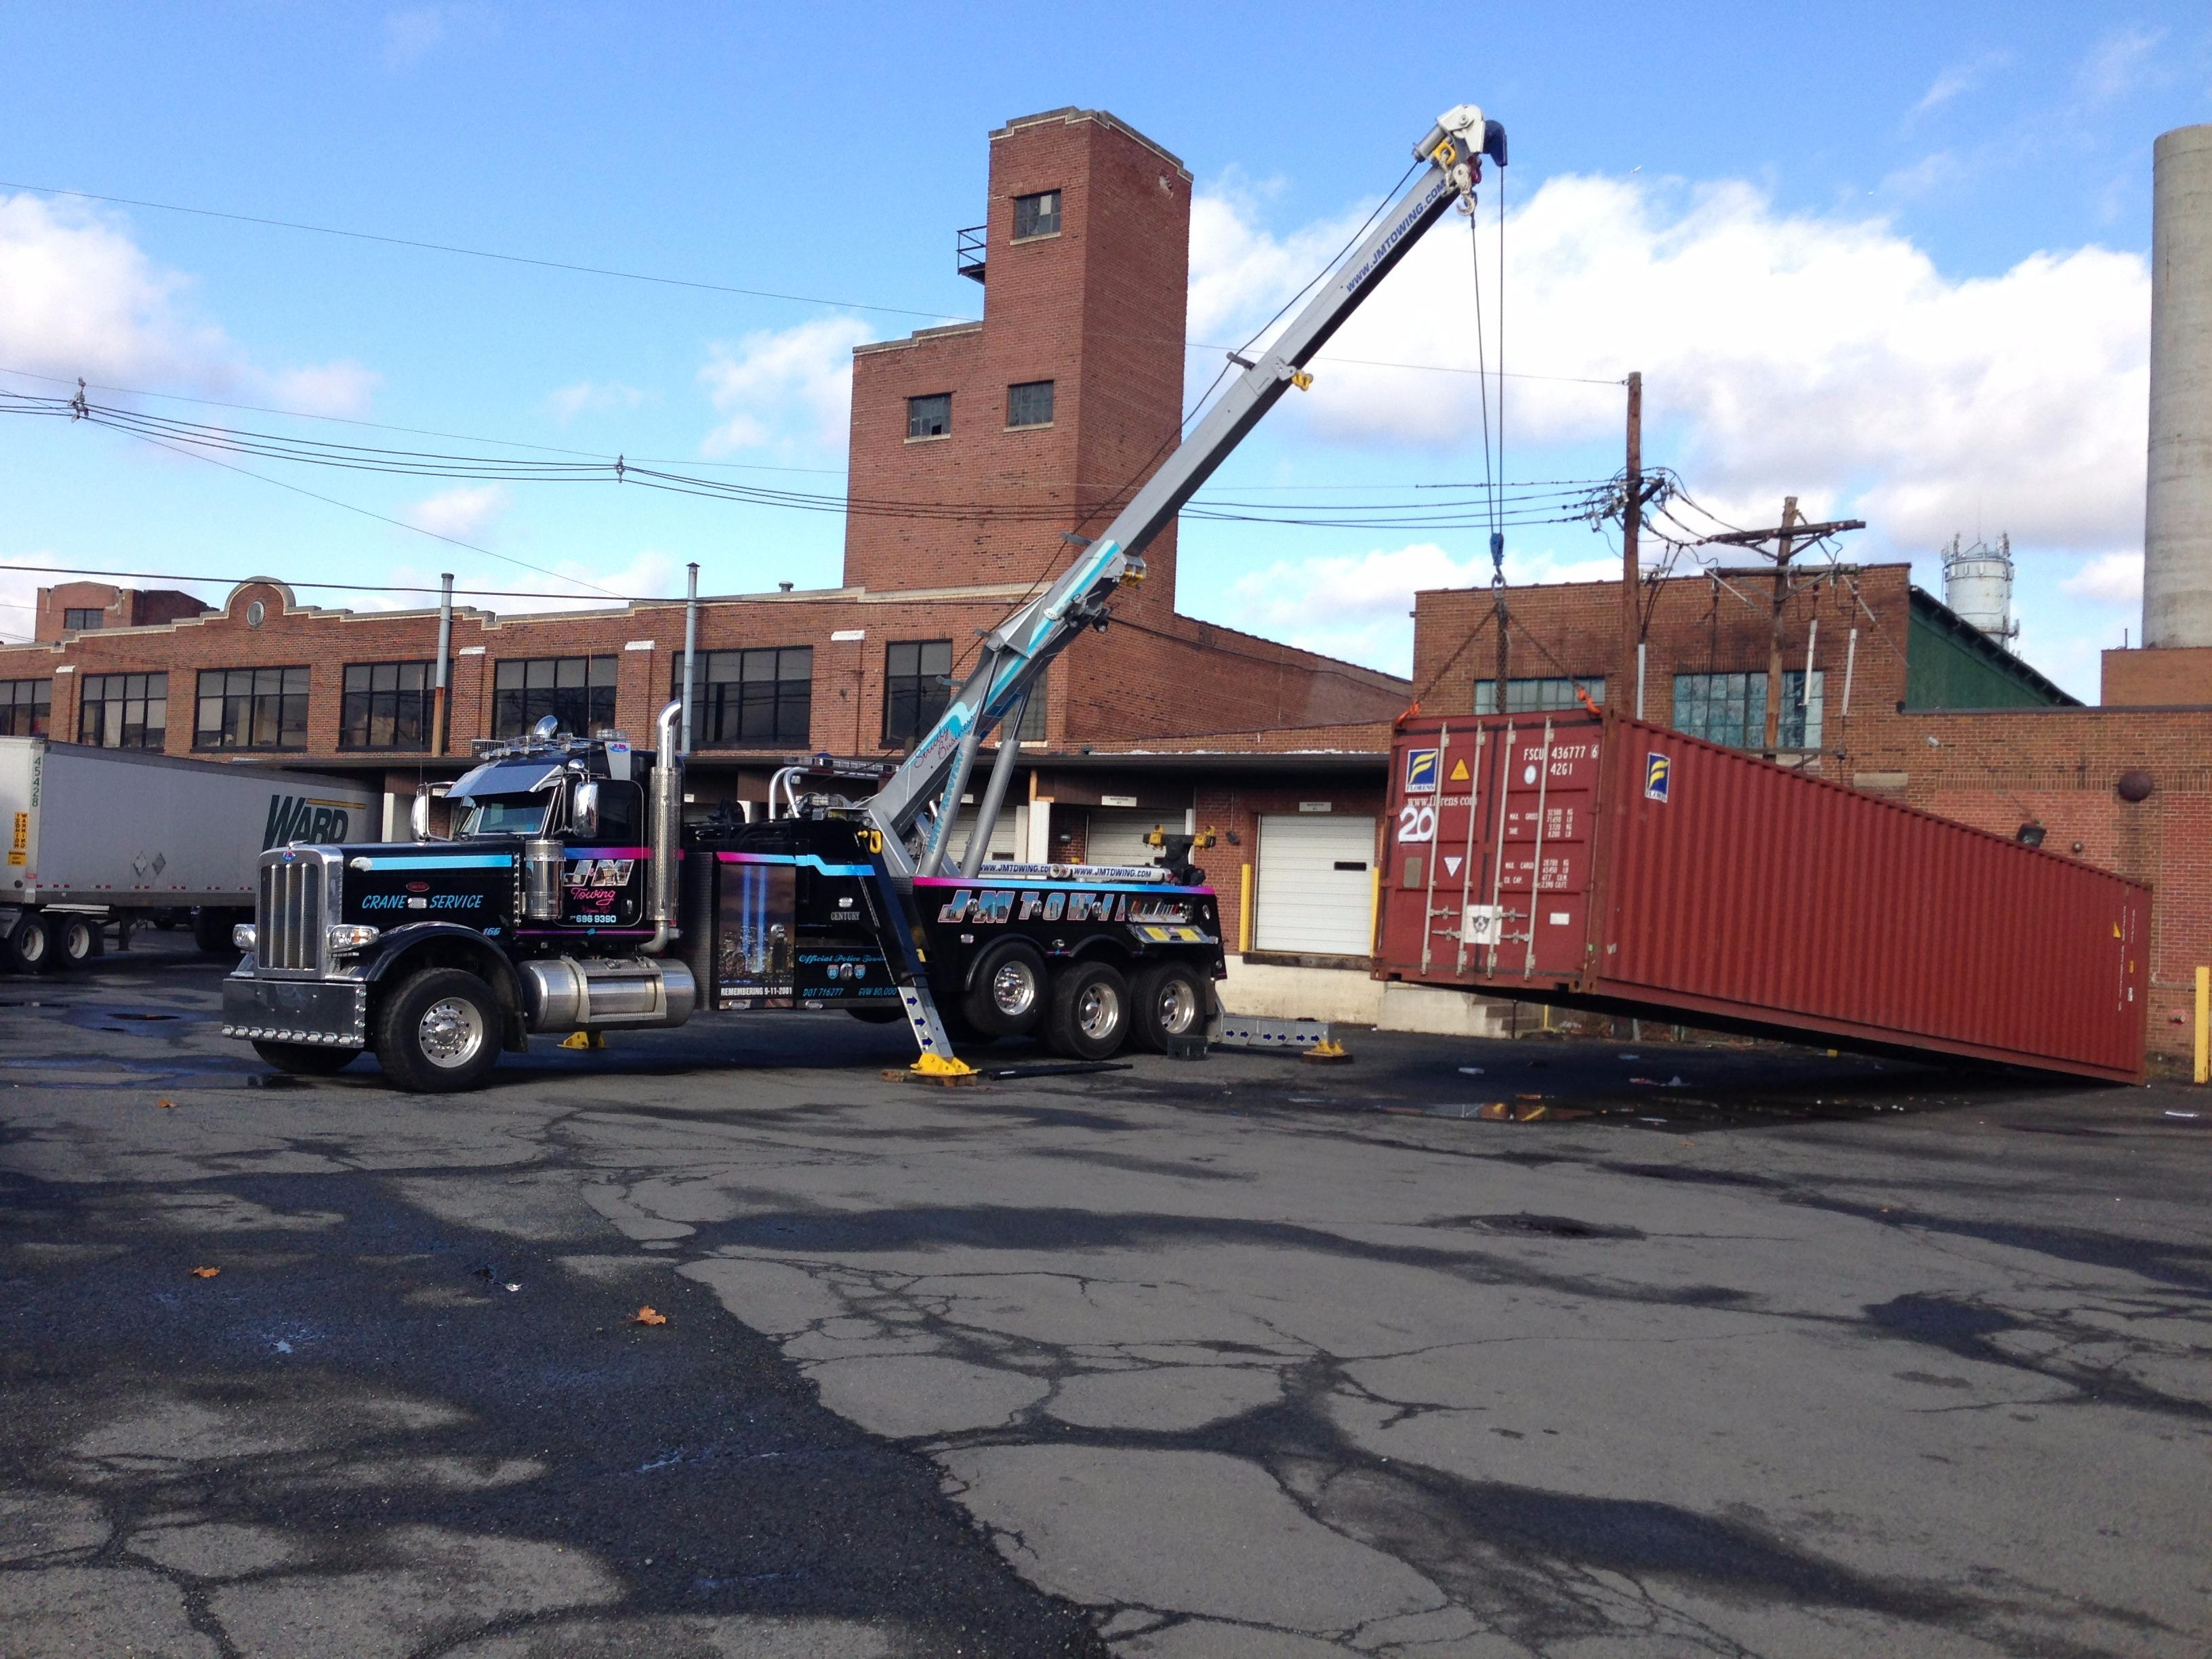 J m towing in wayne nj whitepages for Motor city towing detroit